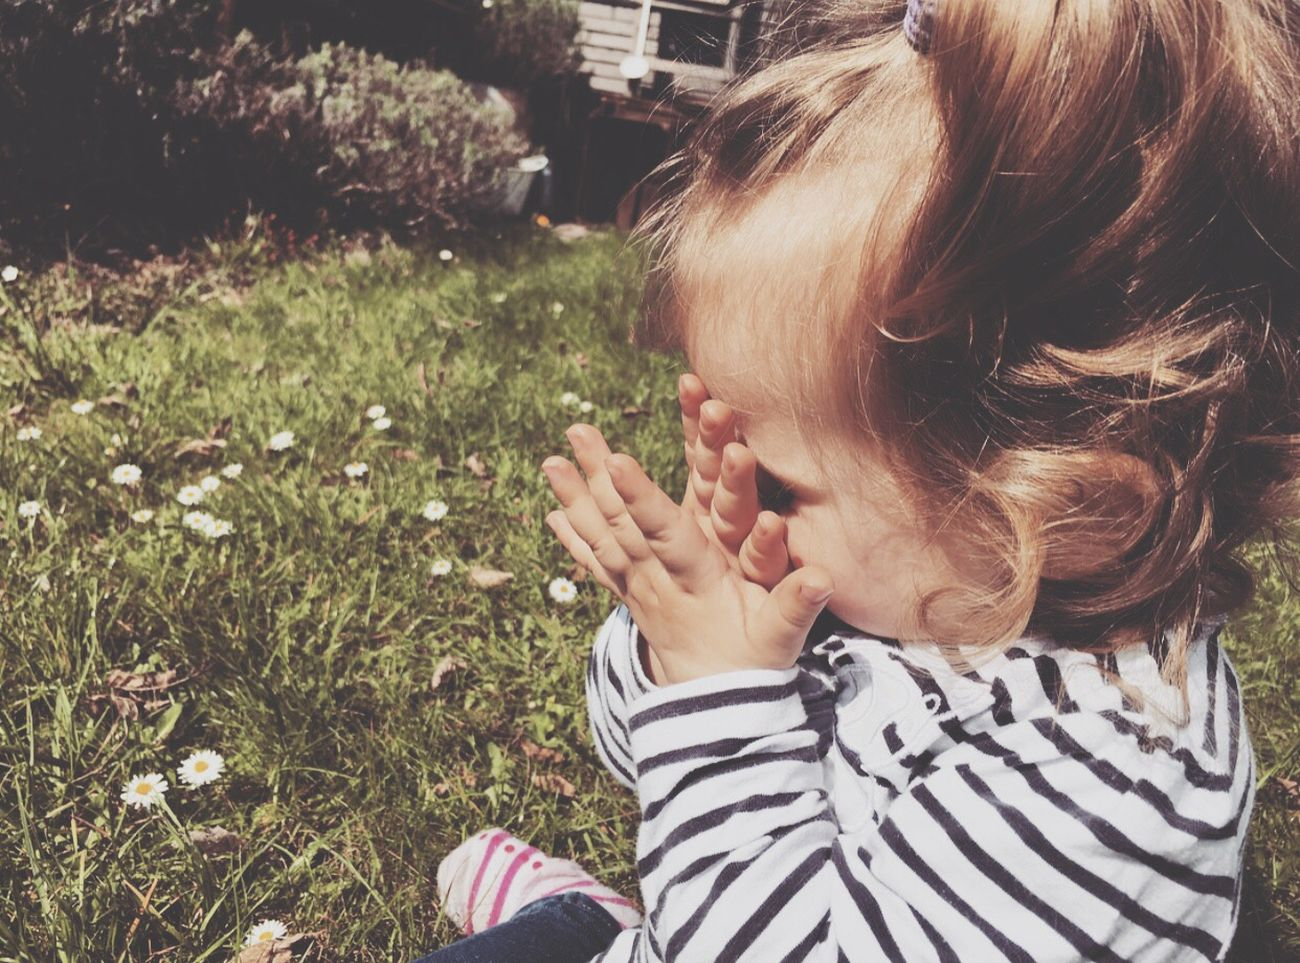 ❤️ Mygirl♥ Youandme Mamasgirl Hallo Ich Liebe Dich ! Daughter Love Familie Beautiful Sommertime Photography Nice Day Lalefo Daddy's Girl Daddyslittlegirl Cute♡ Toller Tag (: Fotography Family❤ Sun Beauty Summer Pretty Flowers Flower Photography